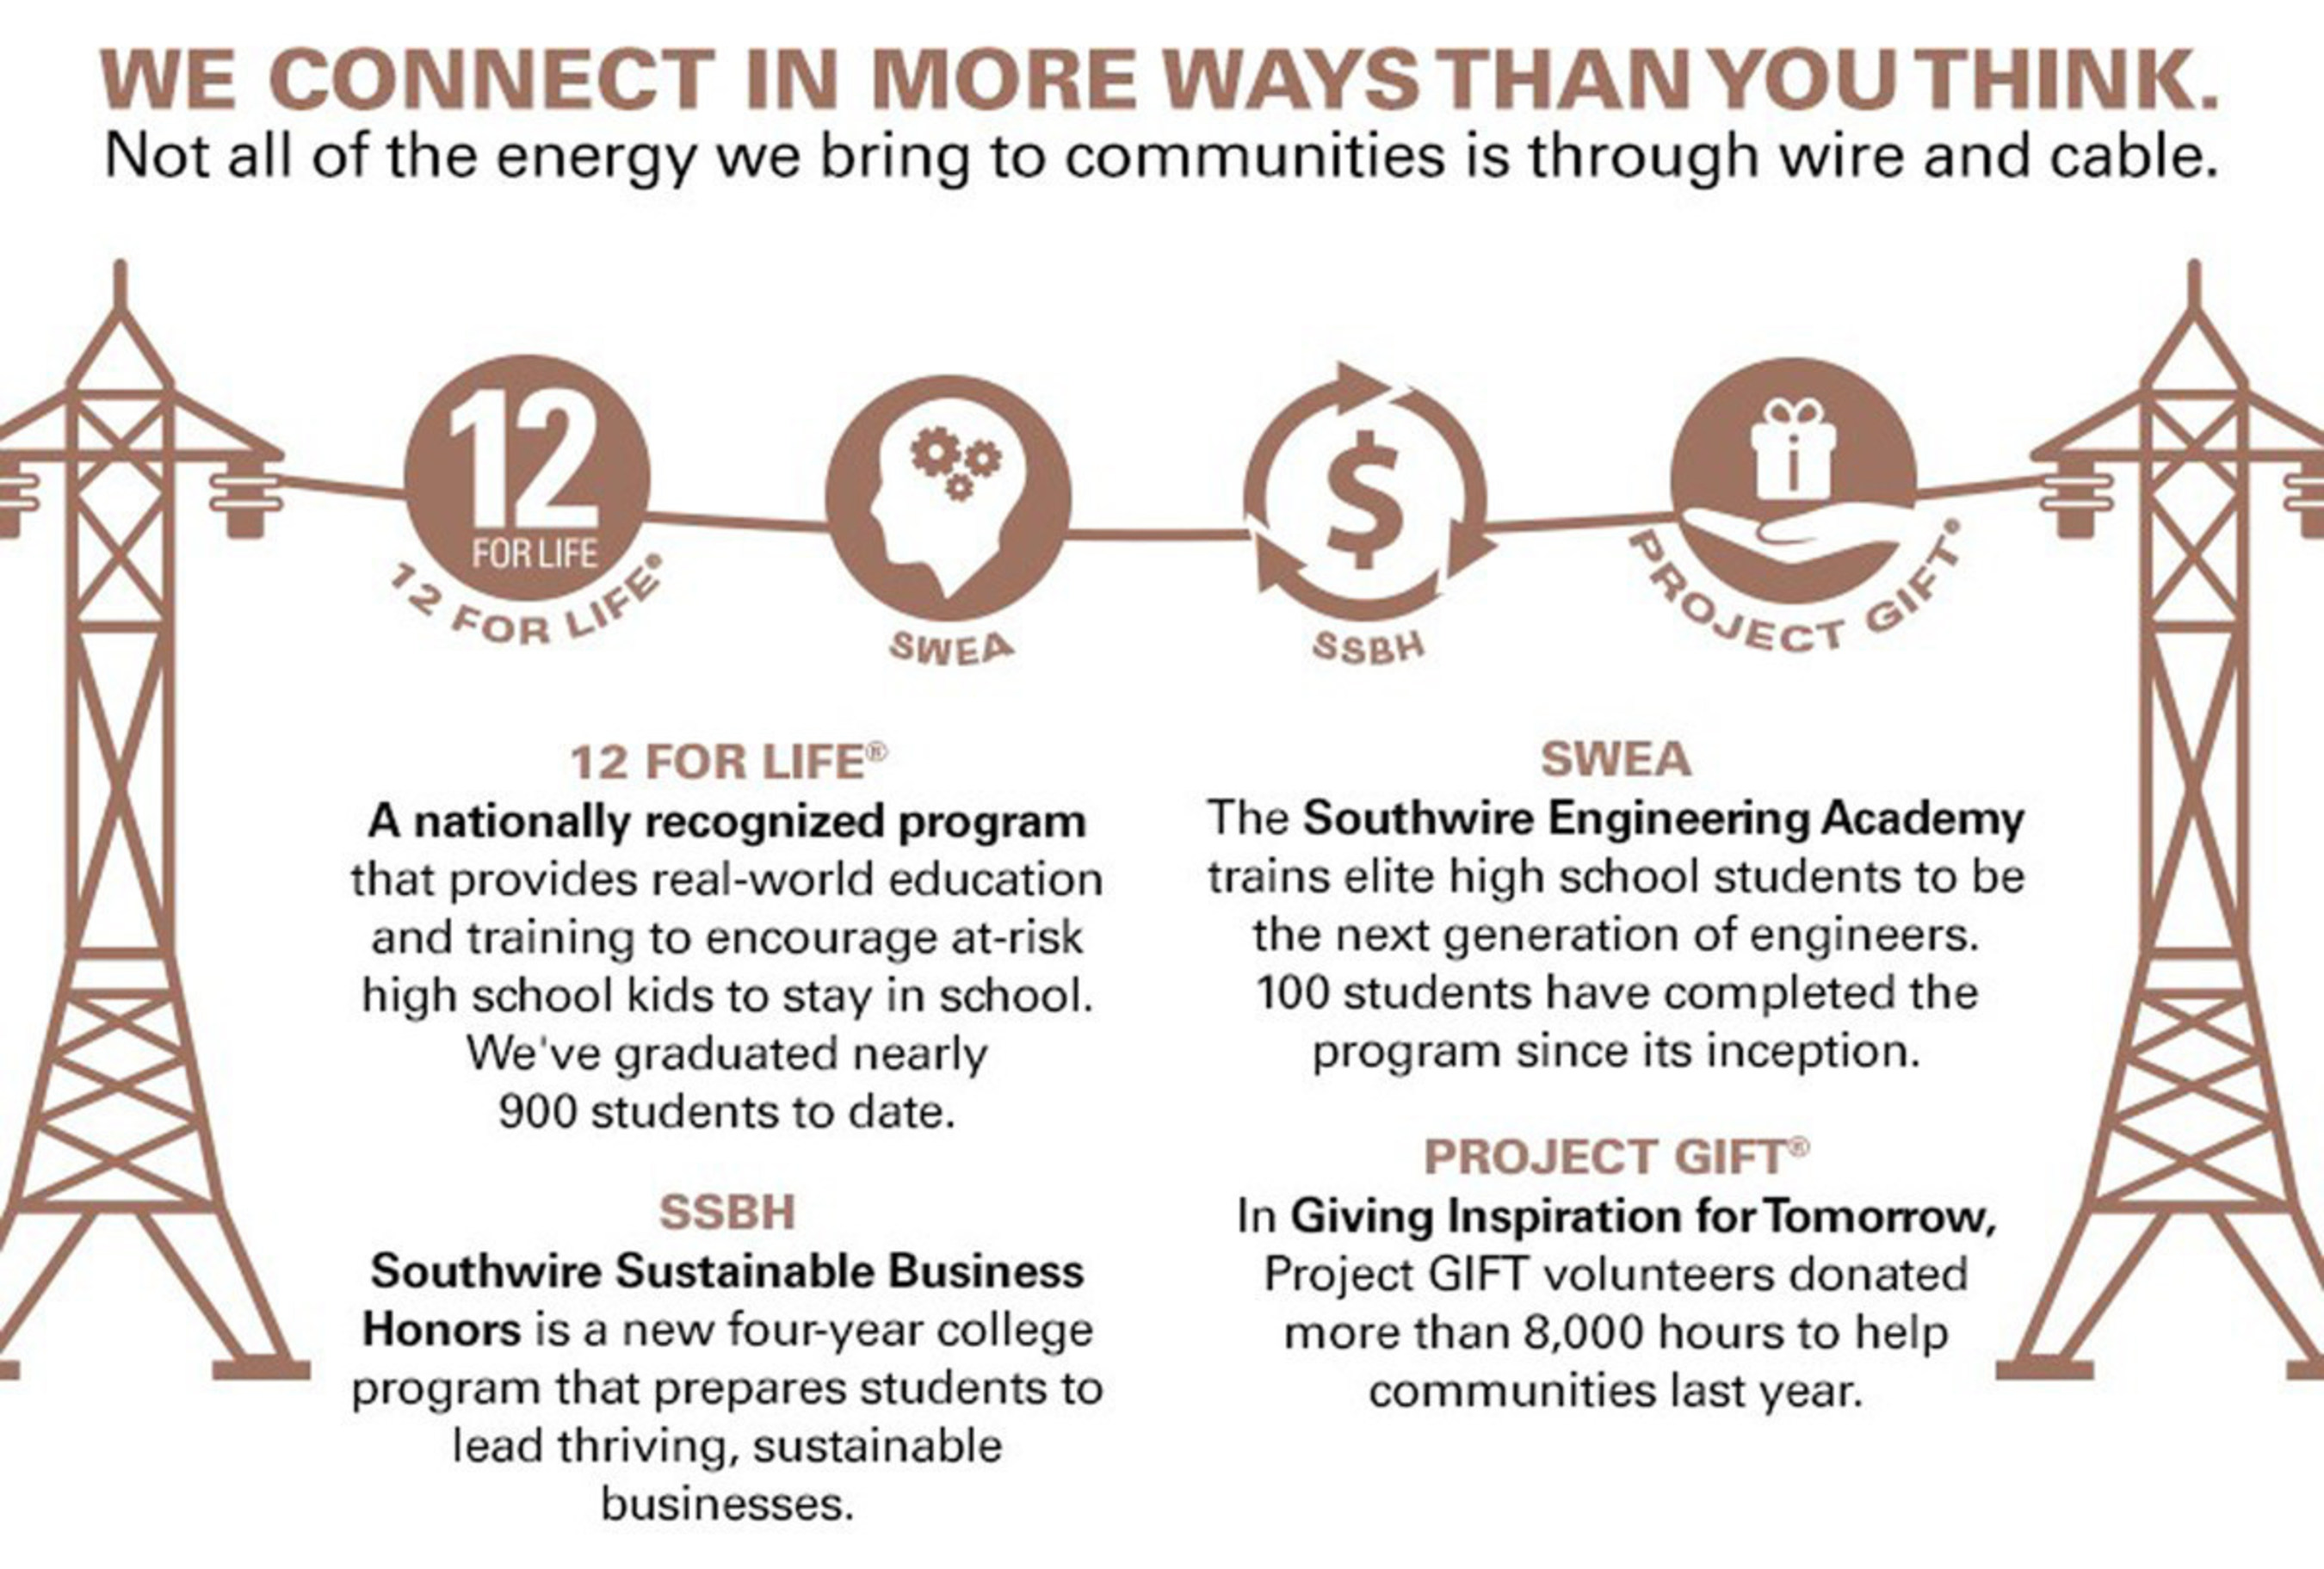 """Southwire Company's Energy Division connects with the community in more ways than you might think. Extraordinary examples of these community connections can be found in the company's just-released 2014 Sustainability Report, """"Strong. Sustainable. Southwire."""" The company also strives proactively to attract and develop the workforce of the future-for itself as well as the power distribution industry. Here are four extraordinary examples: Southwire's 12 for Life(R) program; Southwire Engineering Academy; Southwire Sustainable Business Honors Program; and Southwire's Project GIFT (Giving Inspiration for Tomorrow)."""